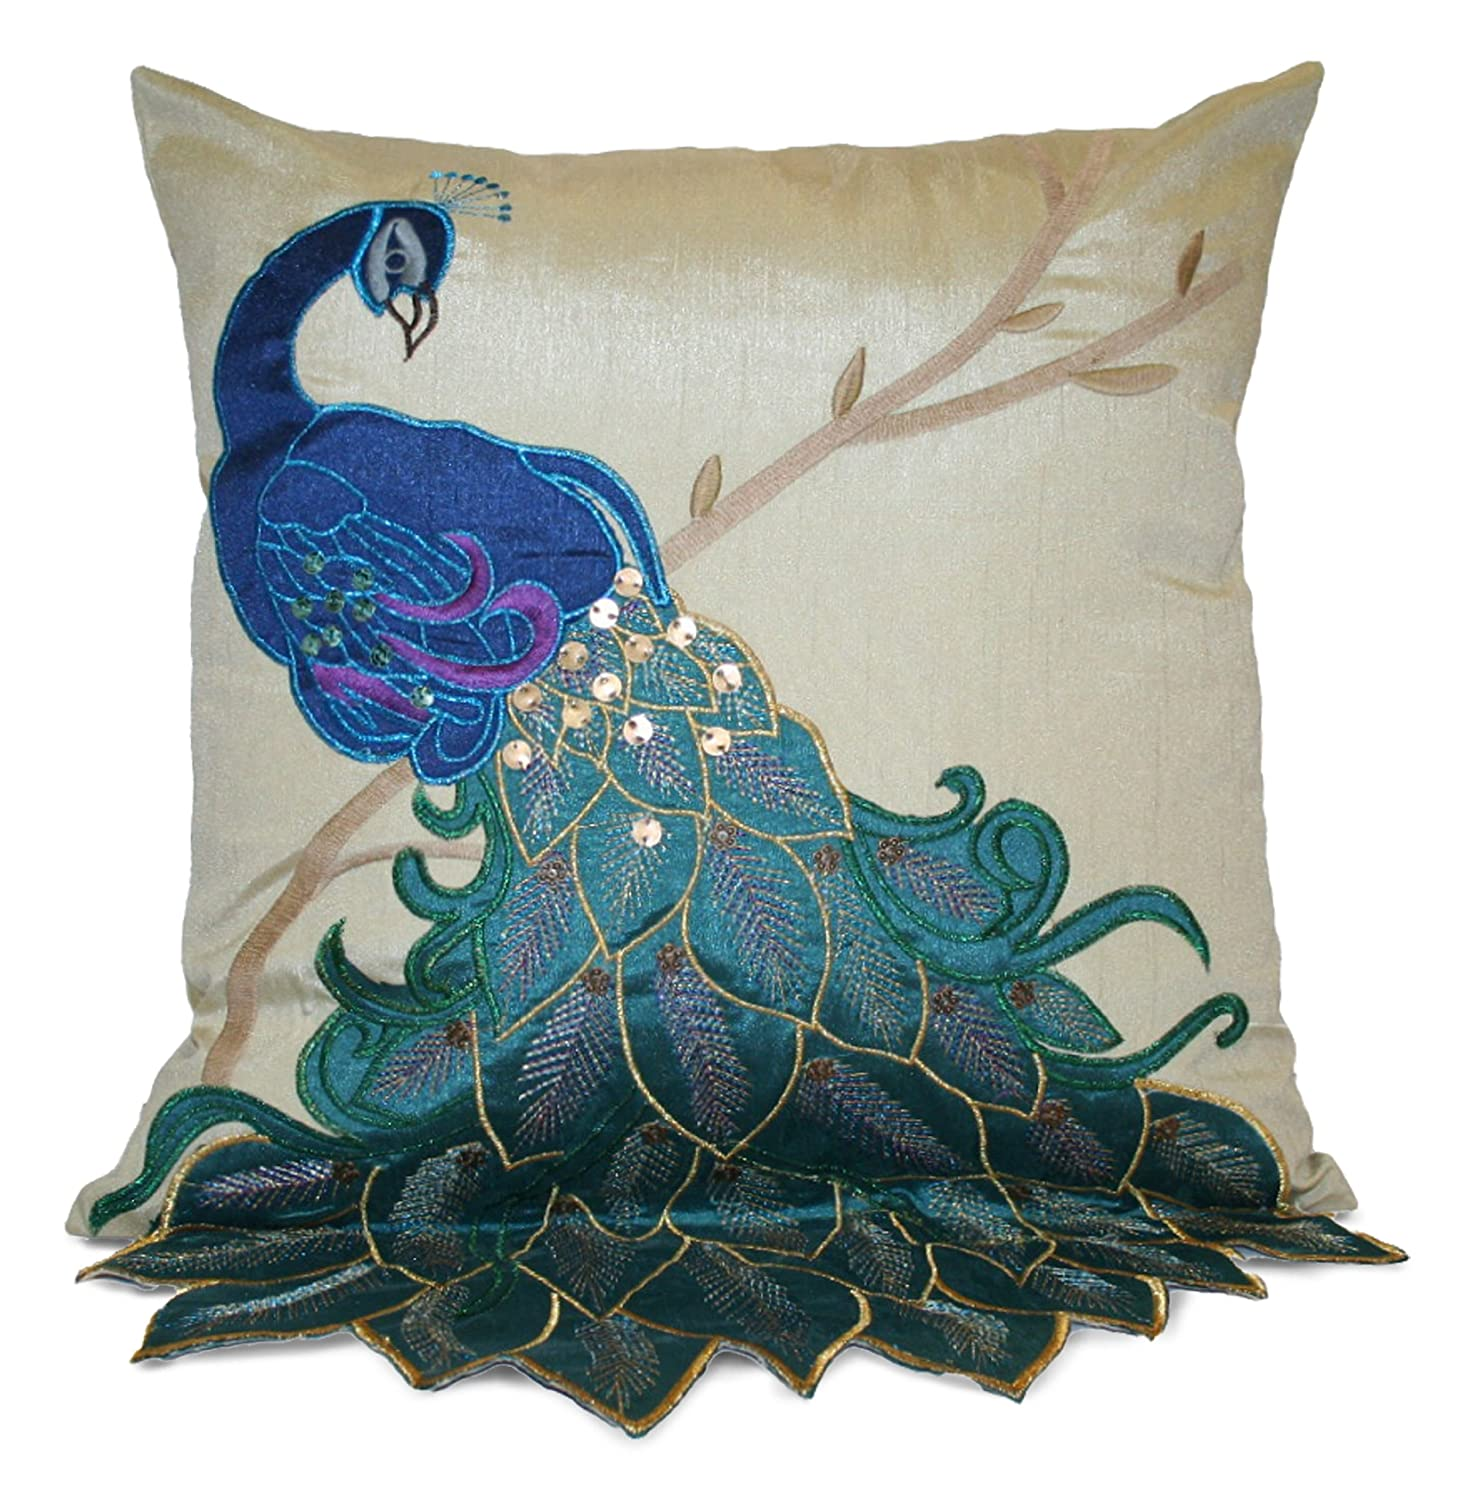 Decorative Pillow Sets For Bed : Beautiful Peacock Pillows and Bedding Sets for Your Home